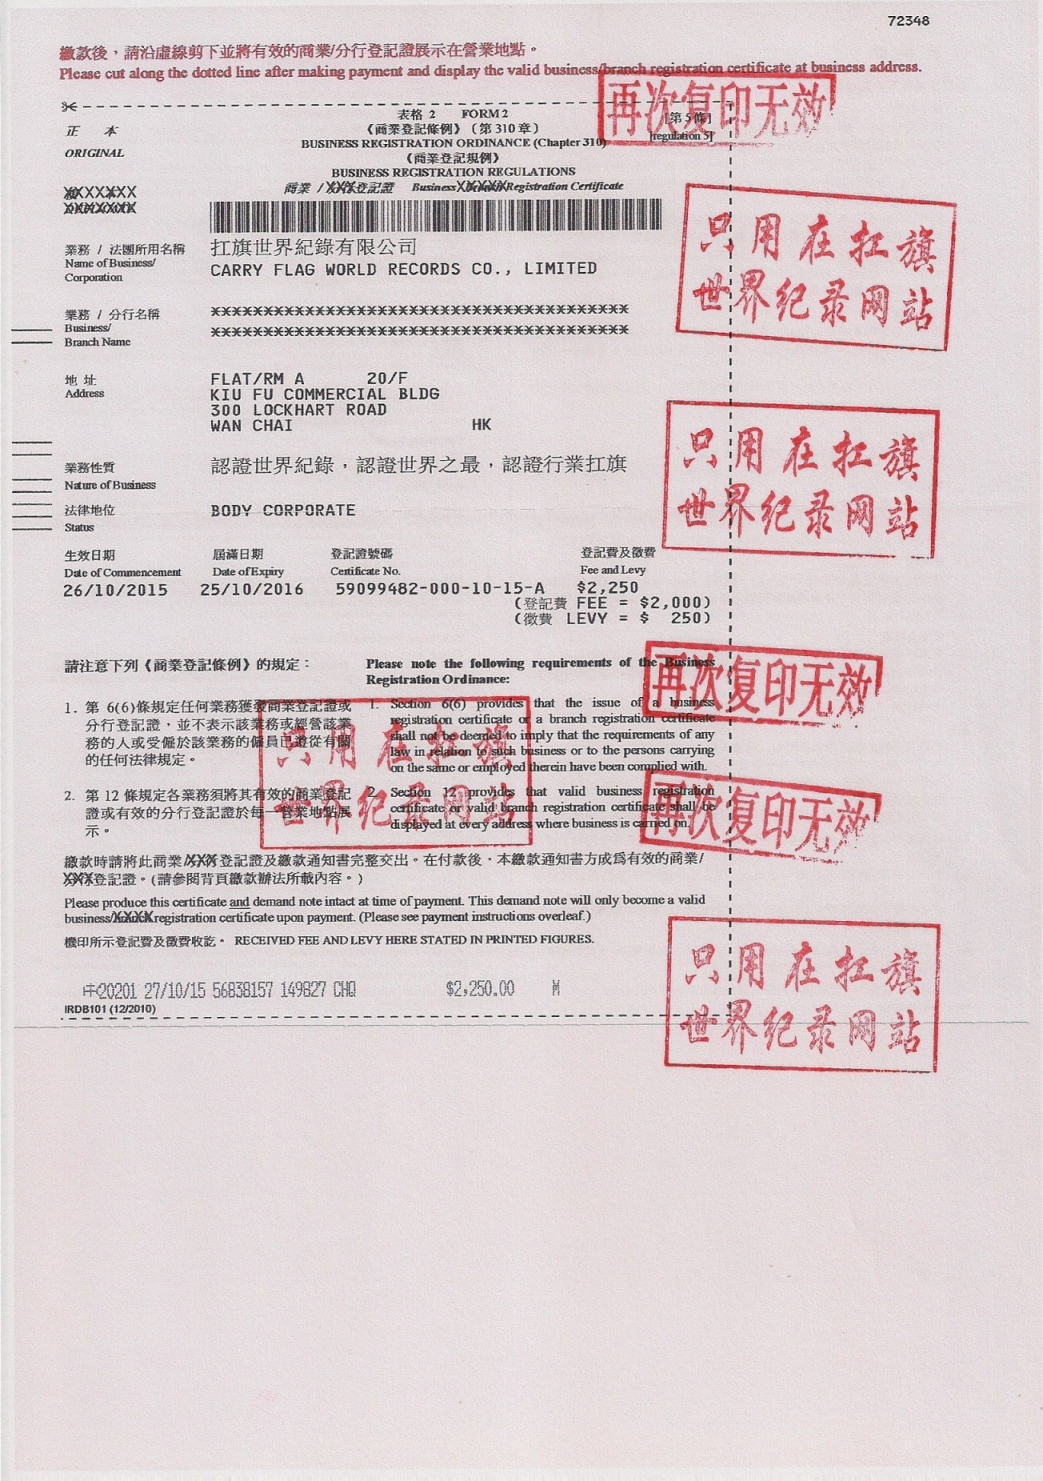 Carrying The Flag World Record Hong Kong Company Business Registration Certificate